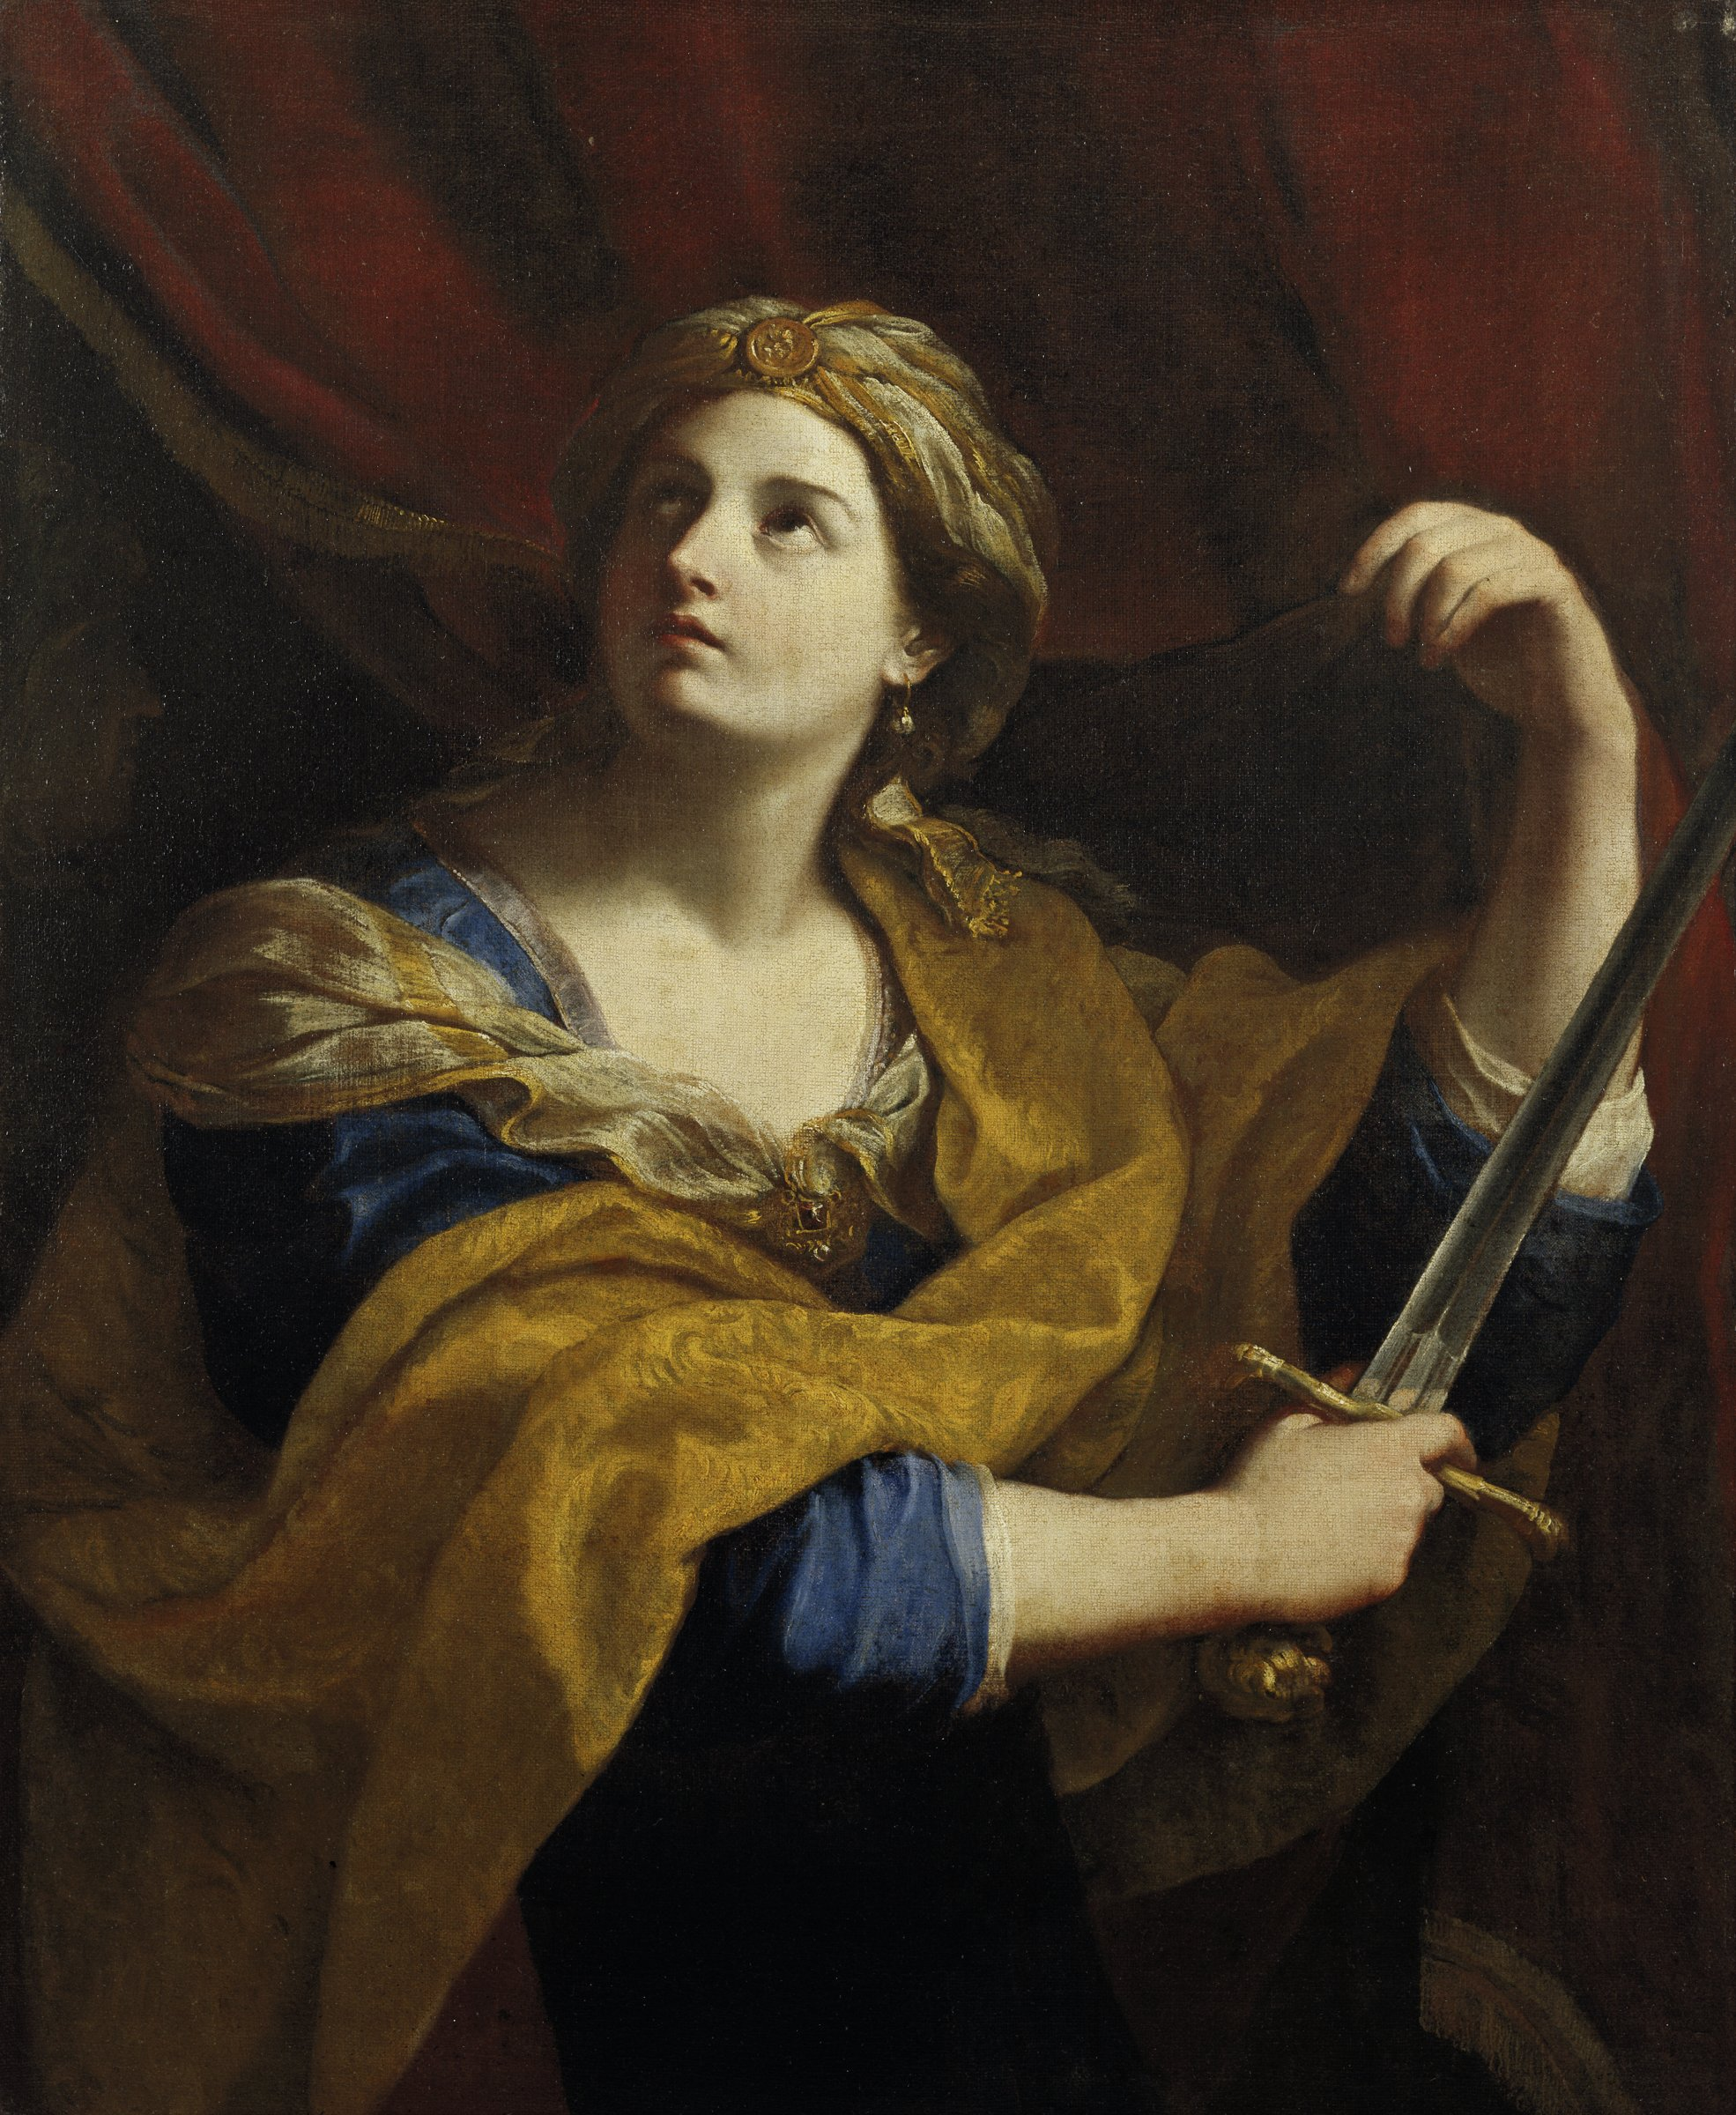 In a darkened tent, a woman looks toward the heavens as she lifts the blade of a sword.